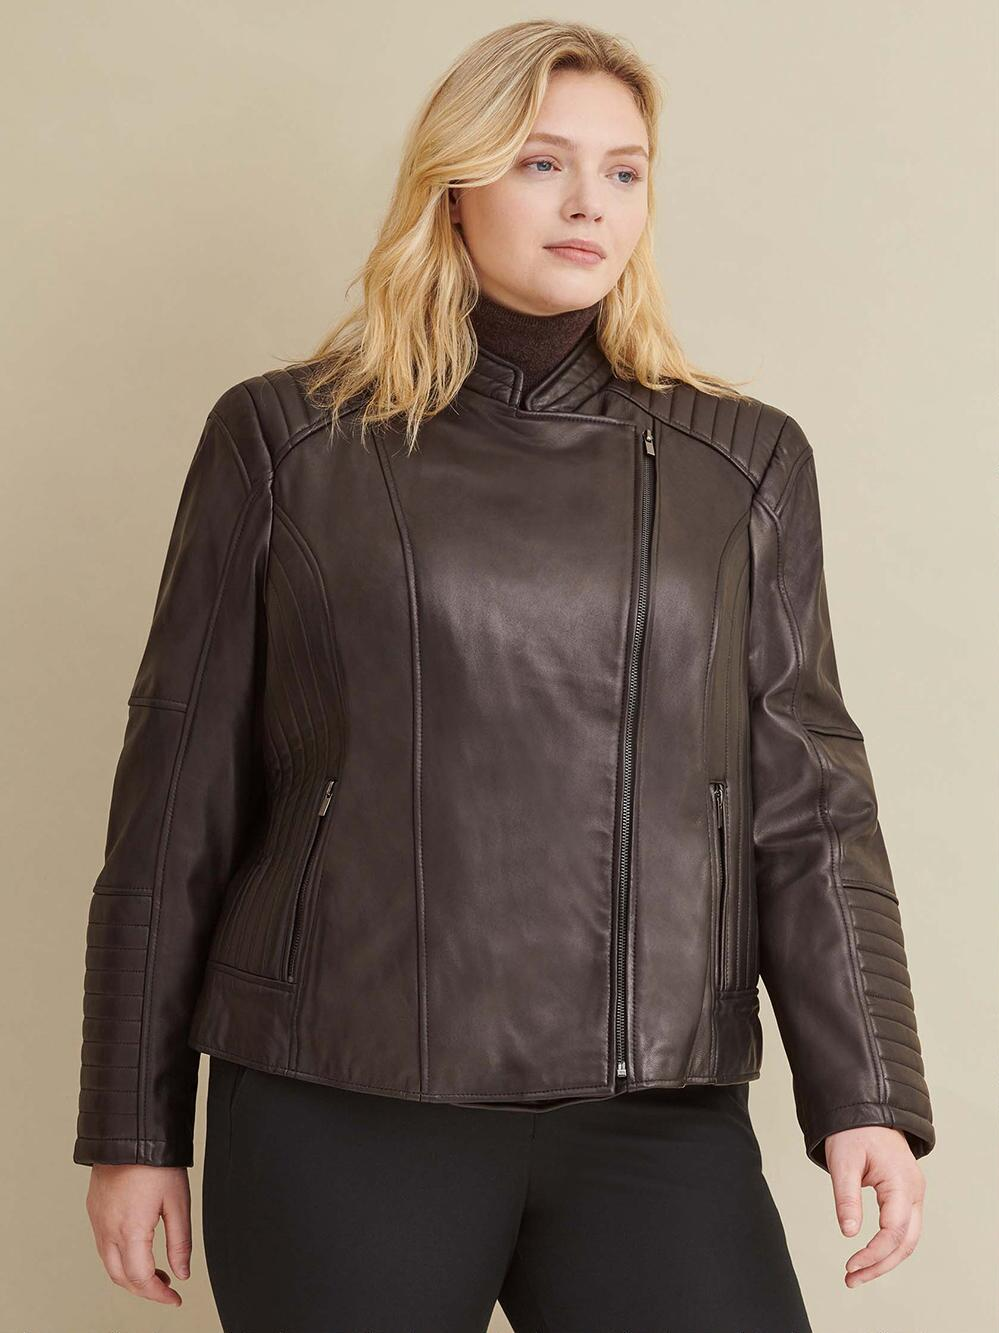 Excelled brings stunning style to your everyday look with this women's leather motorcycle jacket. The quilted shoulders and sleek scuba fit make this piece a wardrobe favorite.